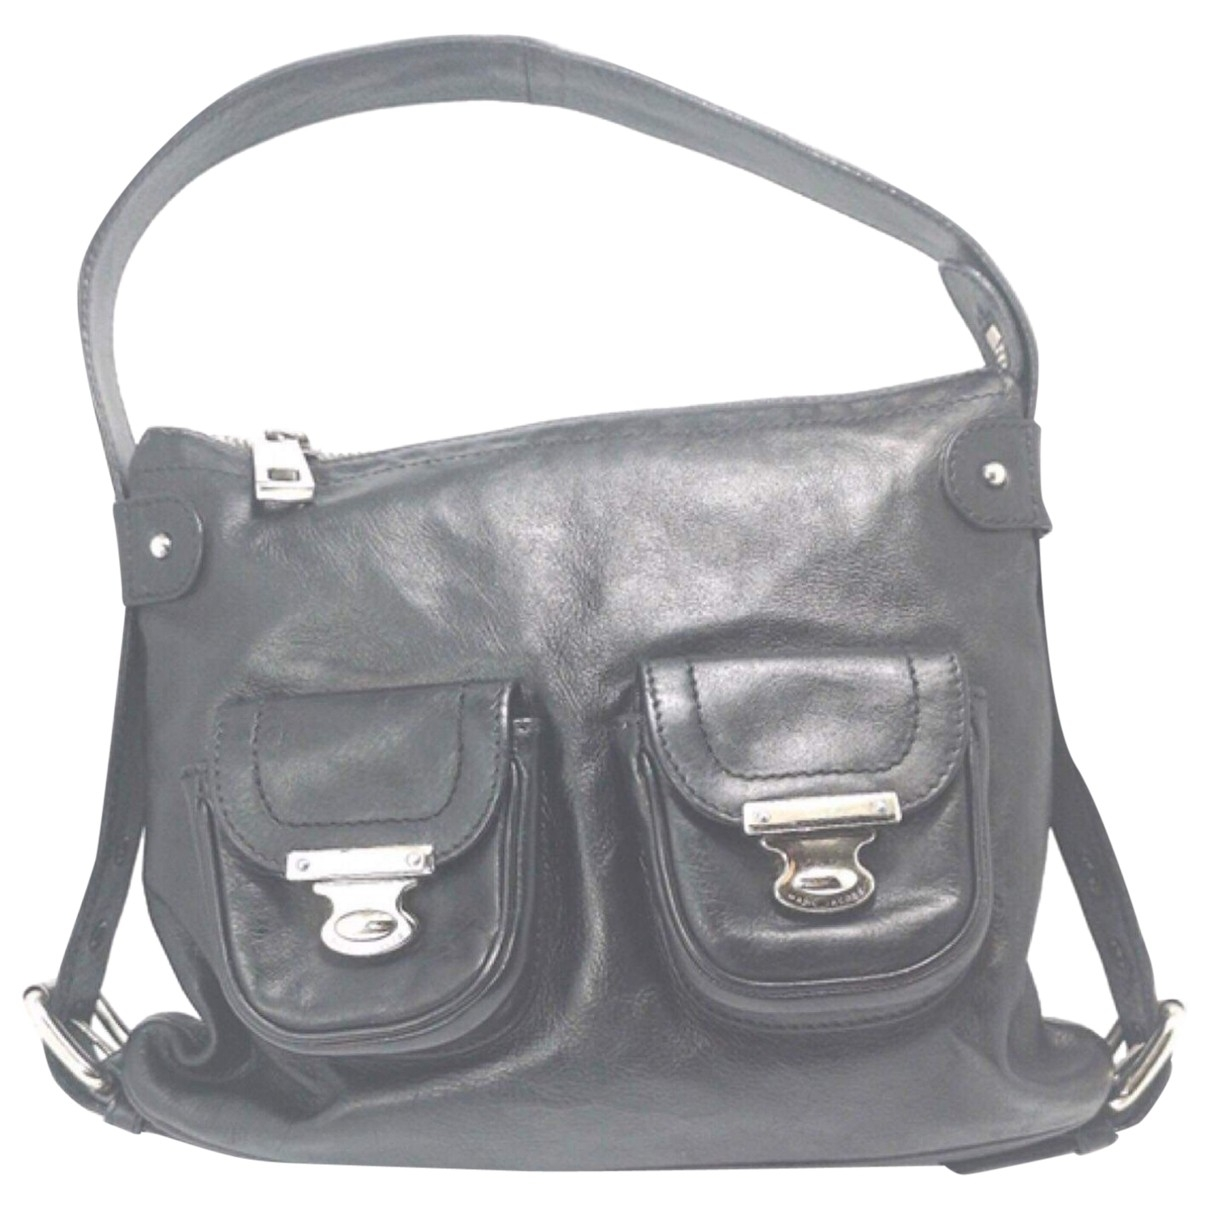 Marc Jacobs \N Black Leather handbag for Women \N